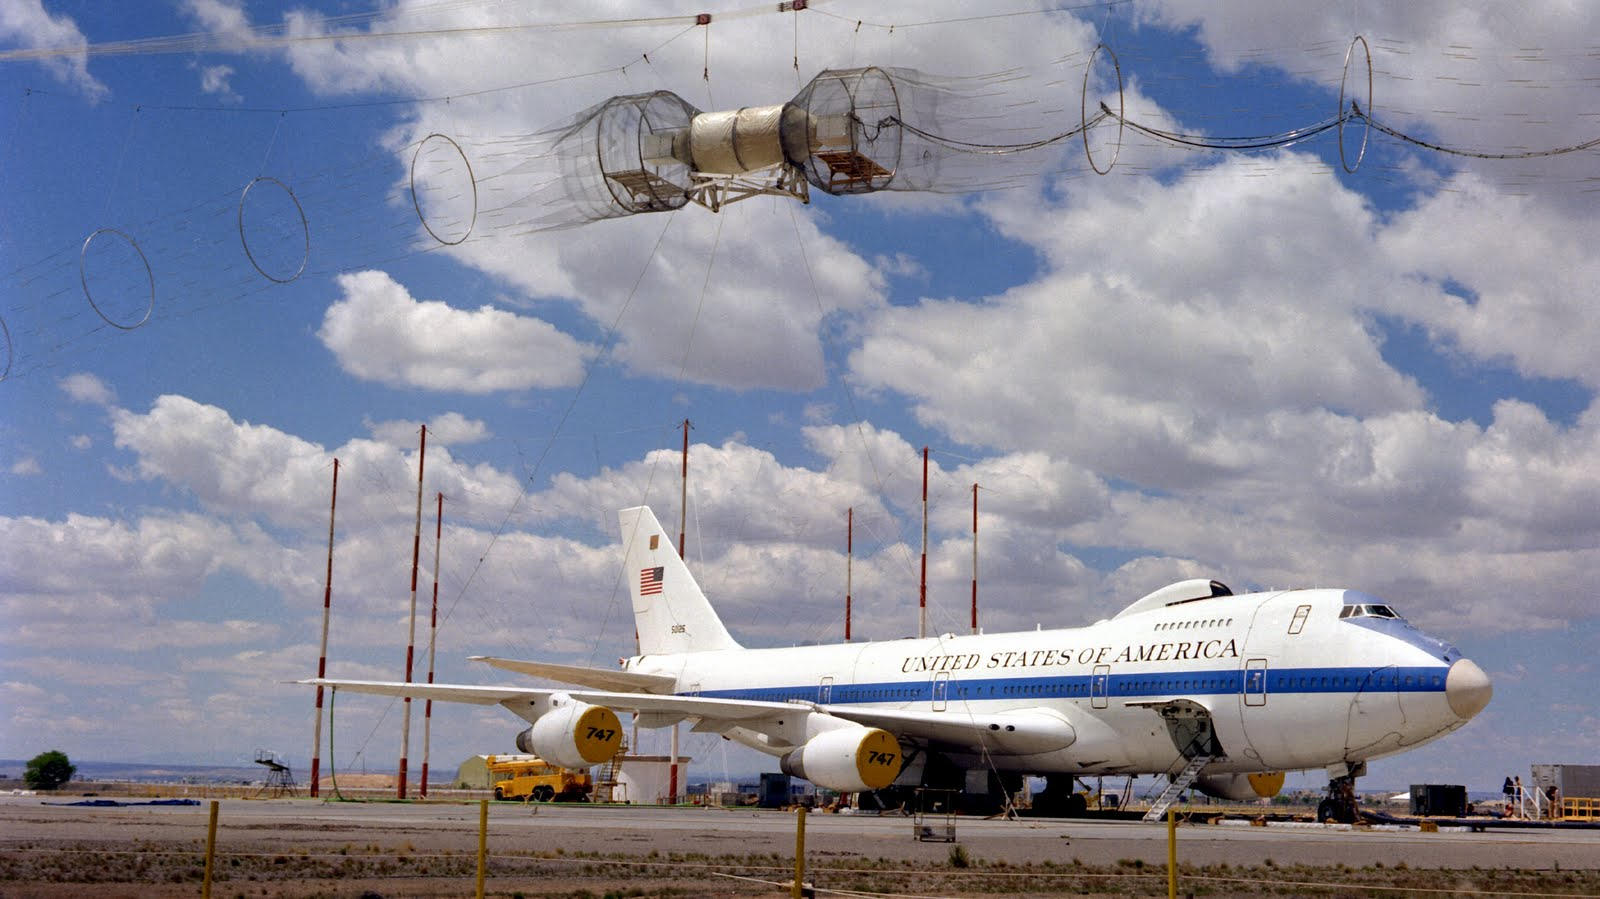 http://3.bp.blogspot.com/-JUb72_yat2M/TgyZ5jcaXHI/AAAAAAAAFzQ/H6VGTkWK4D4/s1600/air_force_one_E-4_grounded_retired_aircraft-wallpaper.jpg